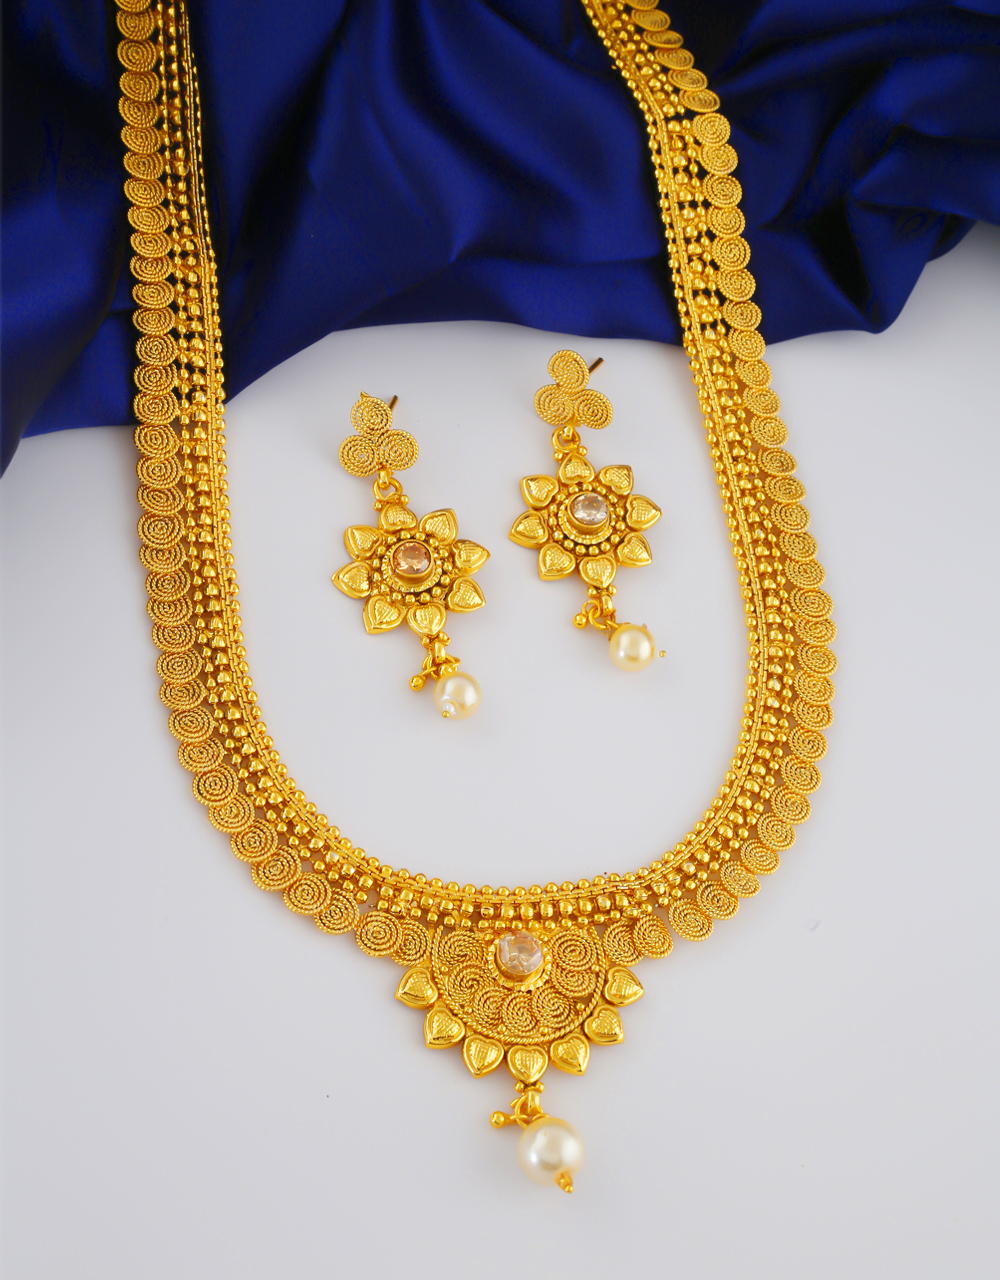 Floral Design Gold Finish Styled With Pearls Beads Long Necklace